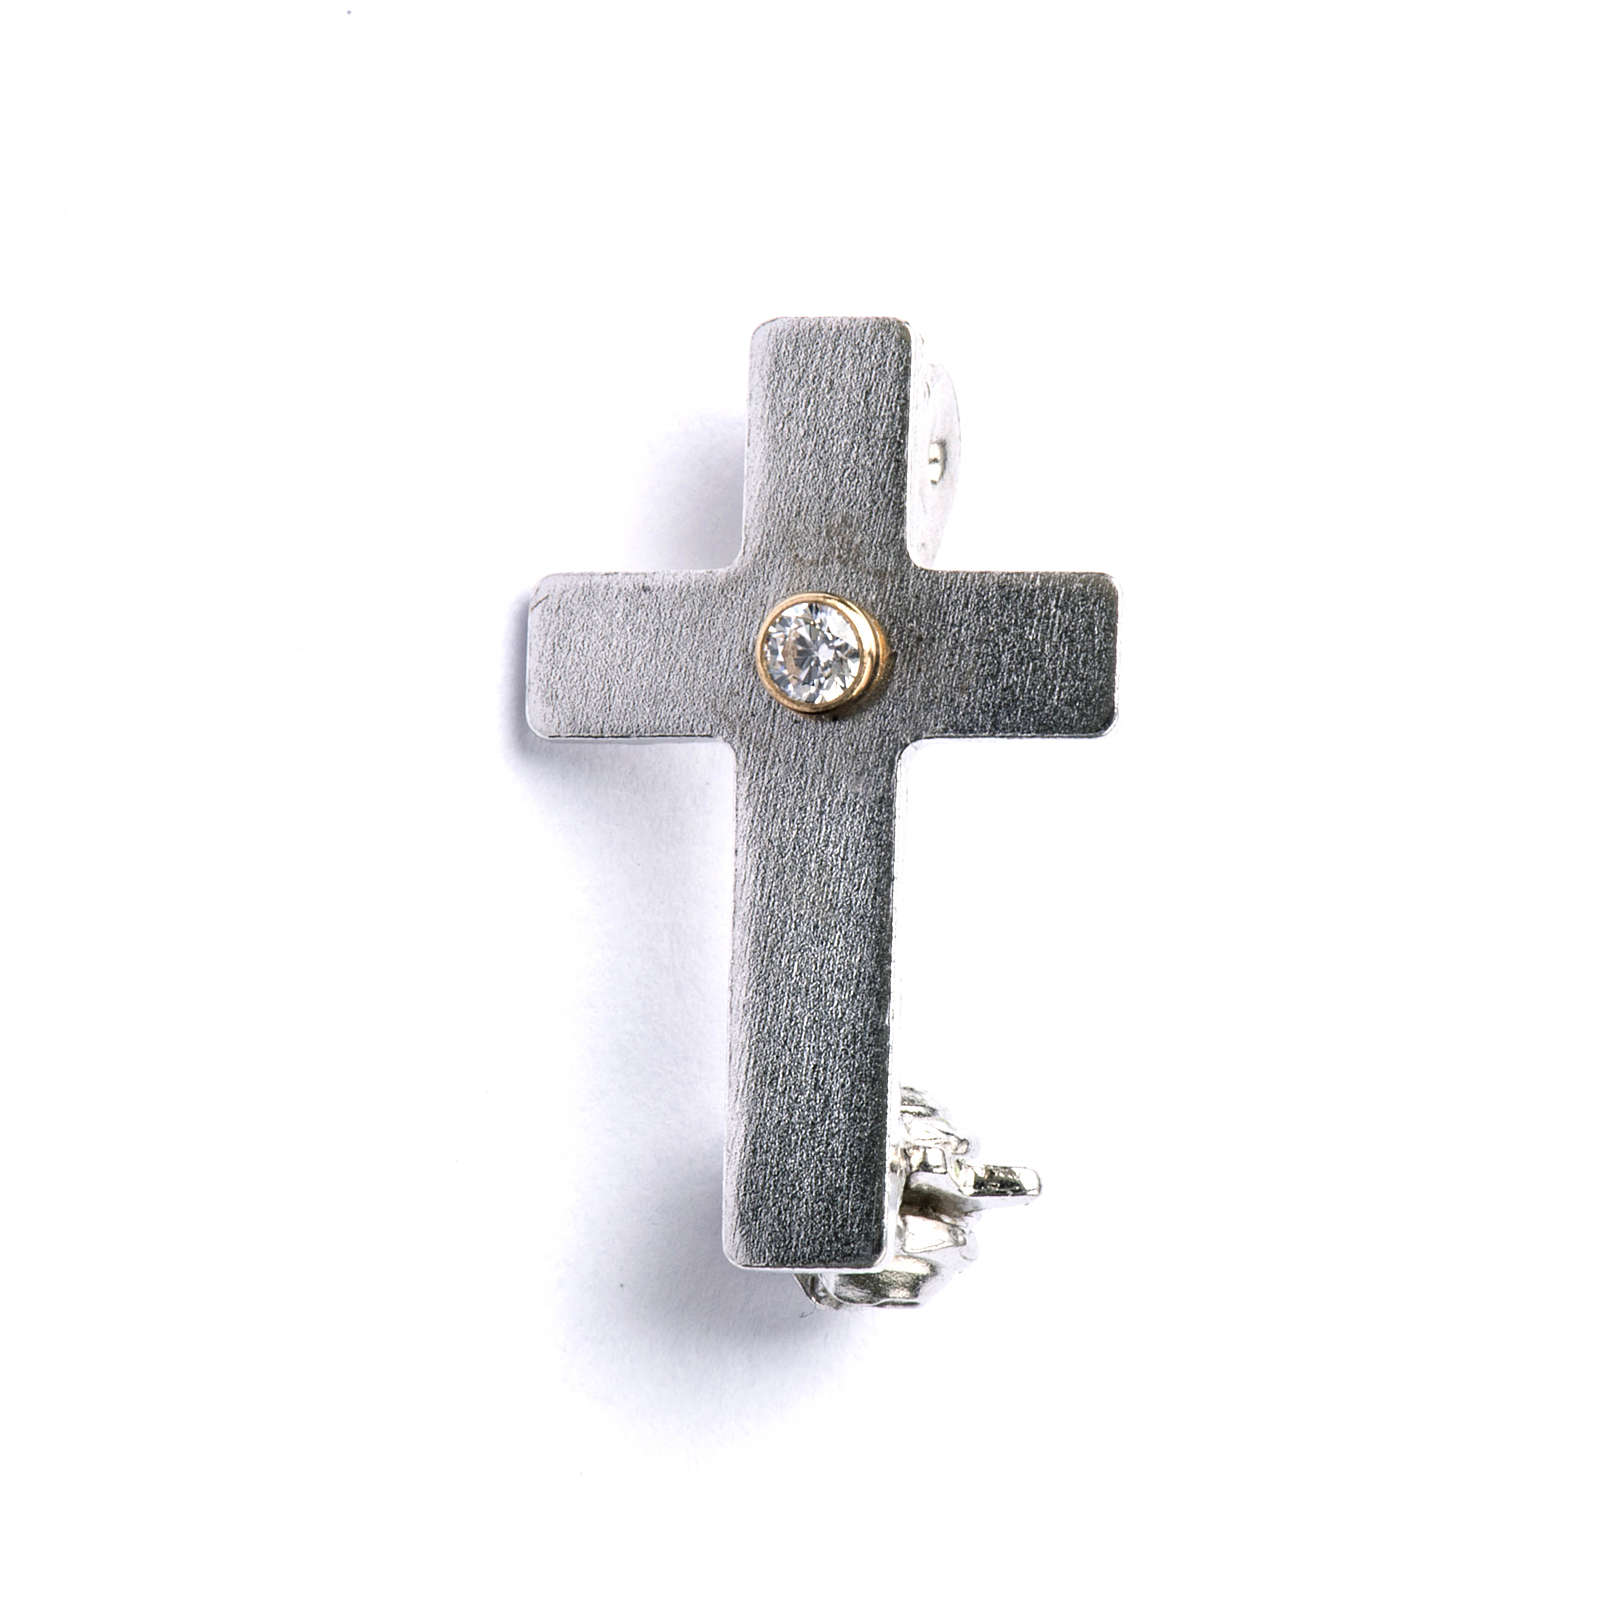 Lapel pin classic priest cross in 925 silver with zircon 4